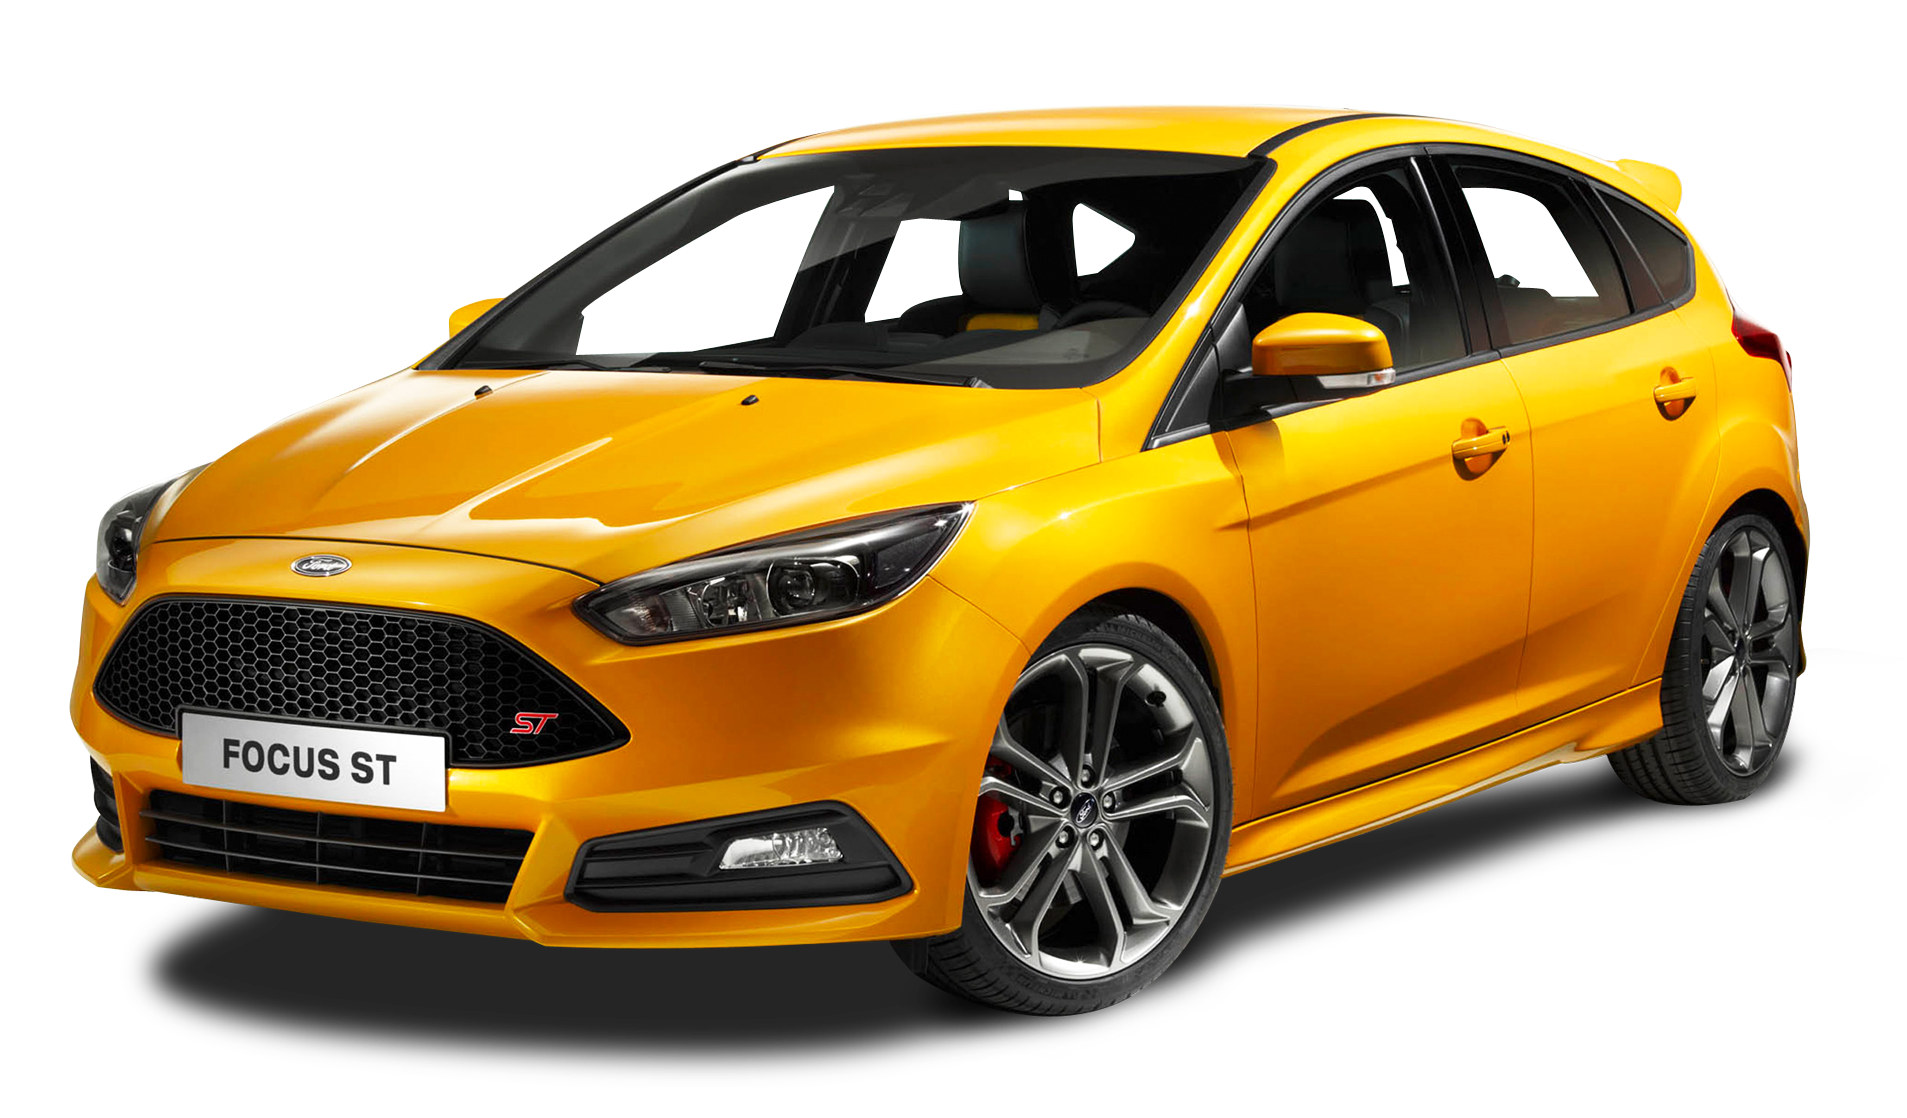 Ford Focus St Yellow Car Png Image Ford Focus Ford Focus St Ford